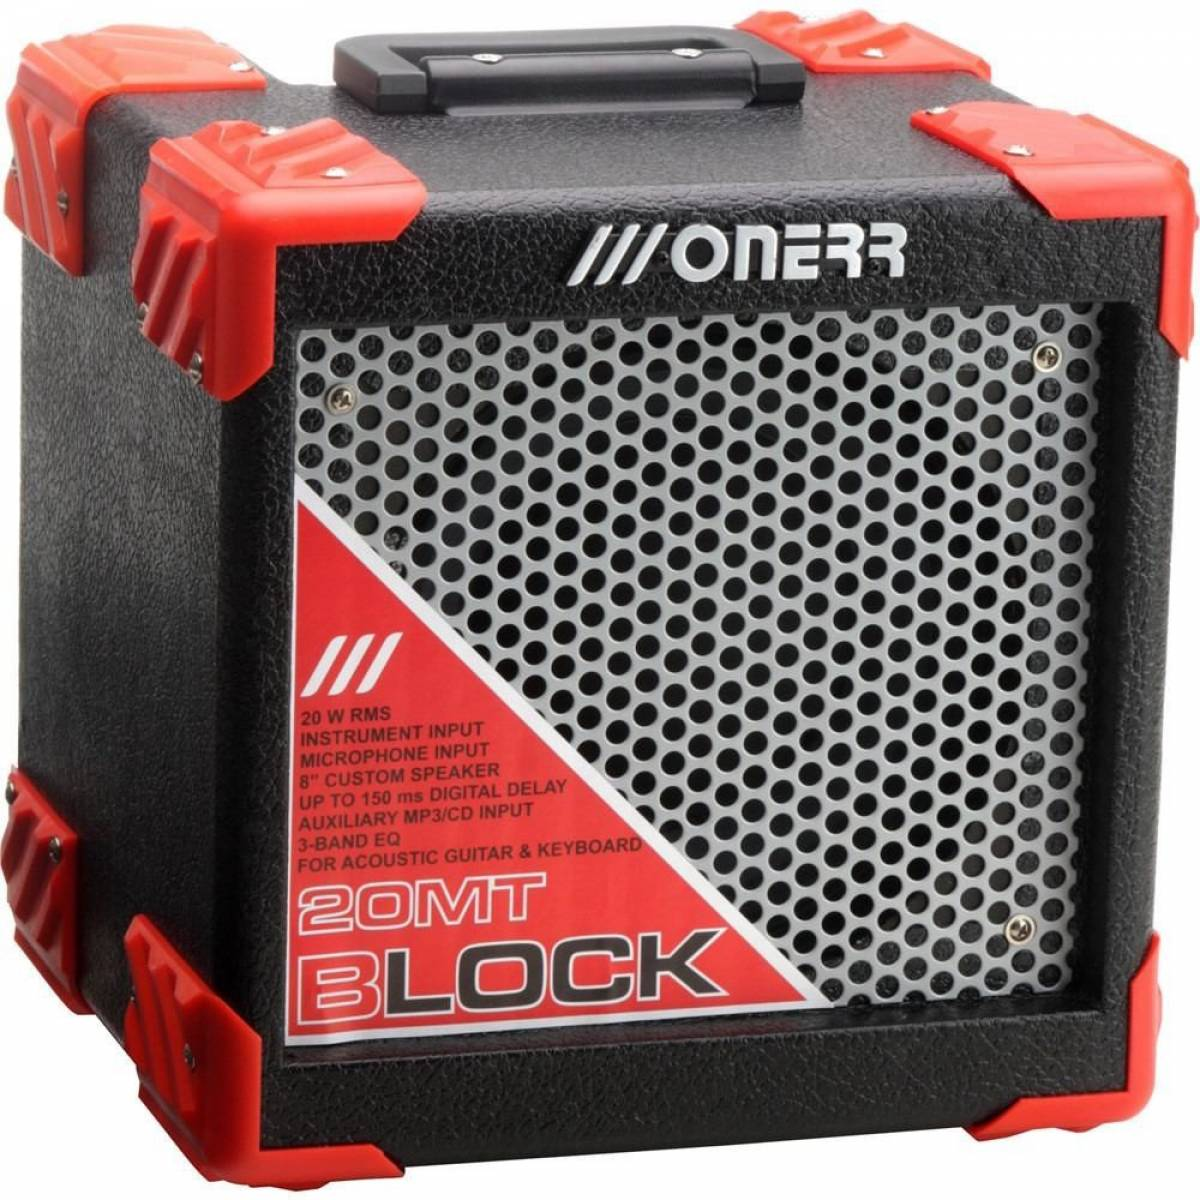 Amplificador Onerr Guitarra Block 20MT 20 Watts